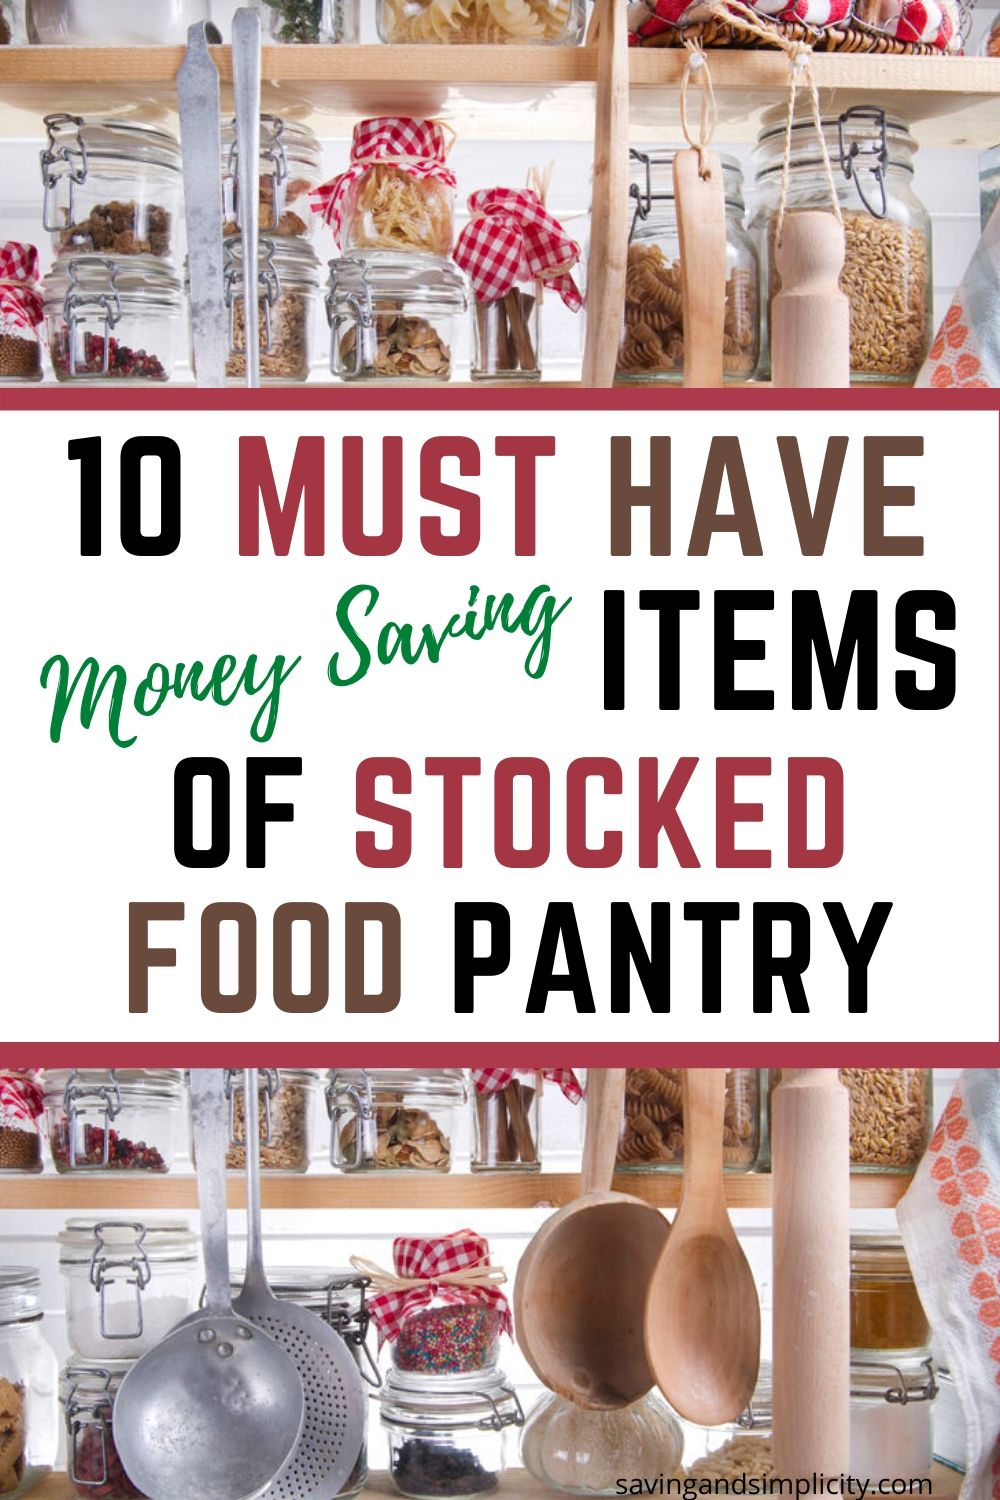 must have food pantry